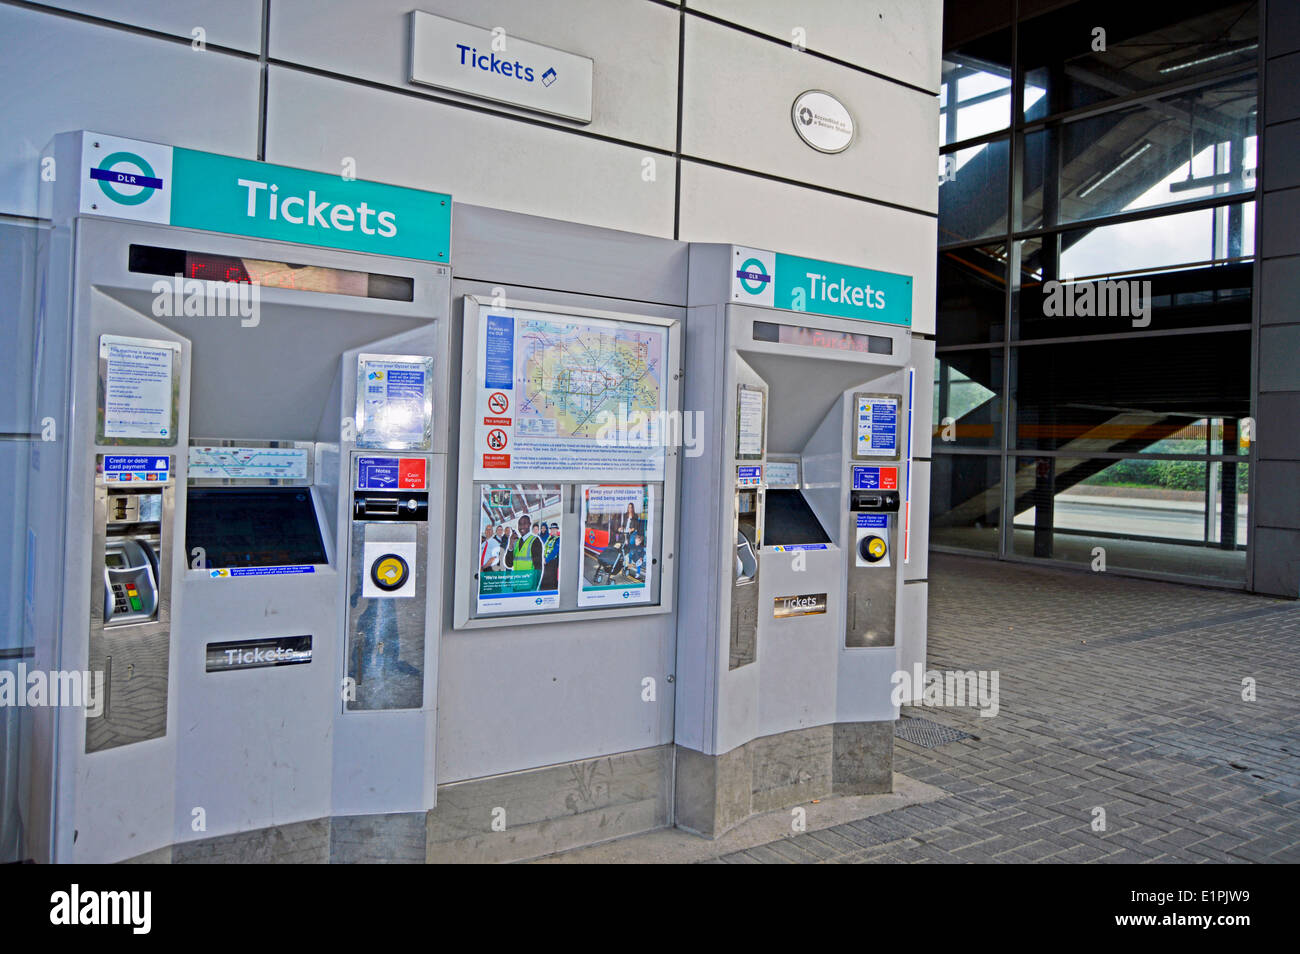 West Silvertown DLR Station Oyster ticket machines, London Borough of Newham, London, England, United Kingdom - Stock Image